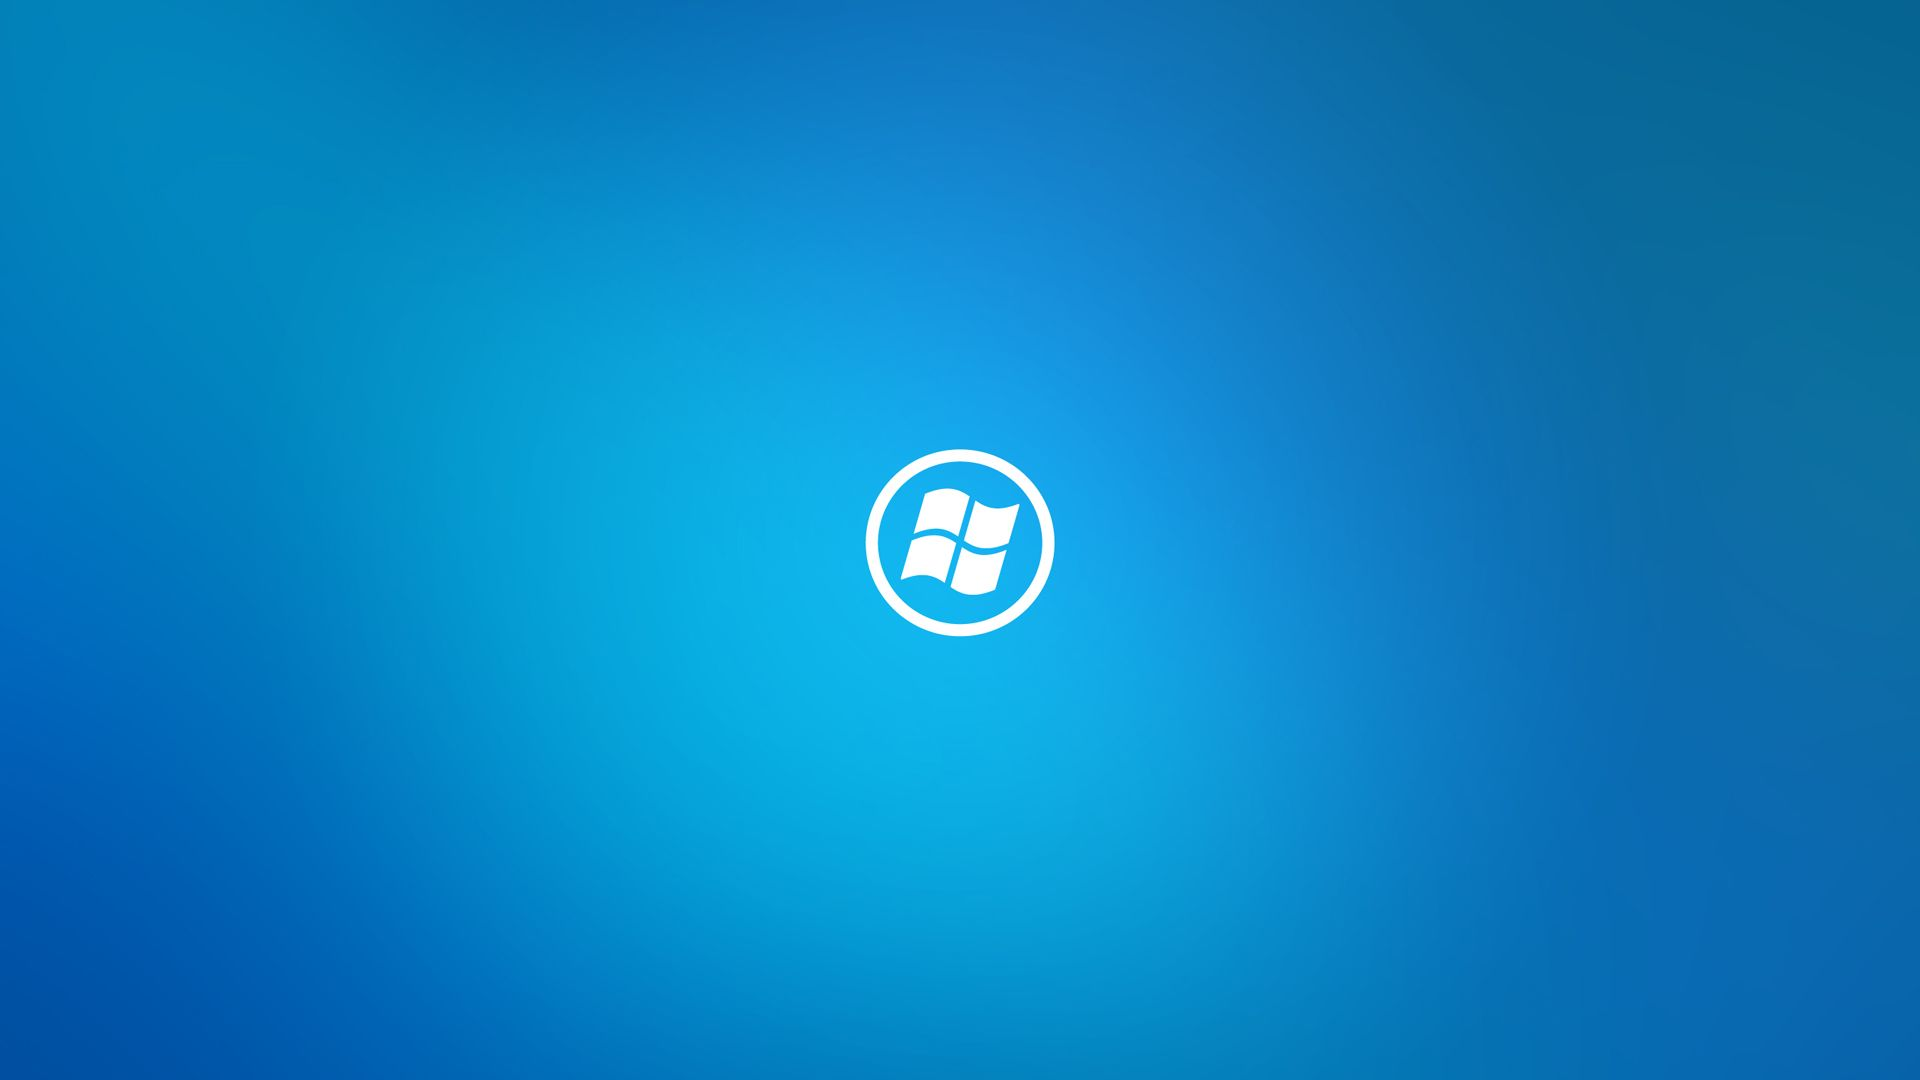 windows wallpapers in hd for free download | wallpapers | pinterest